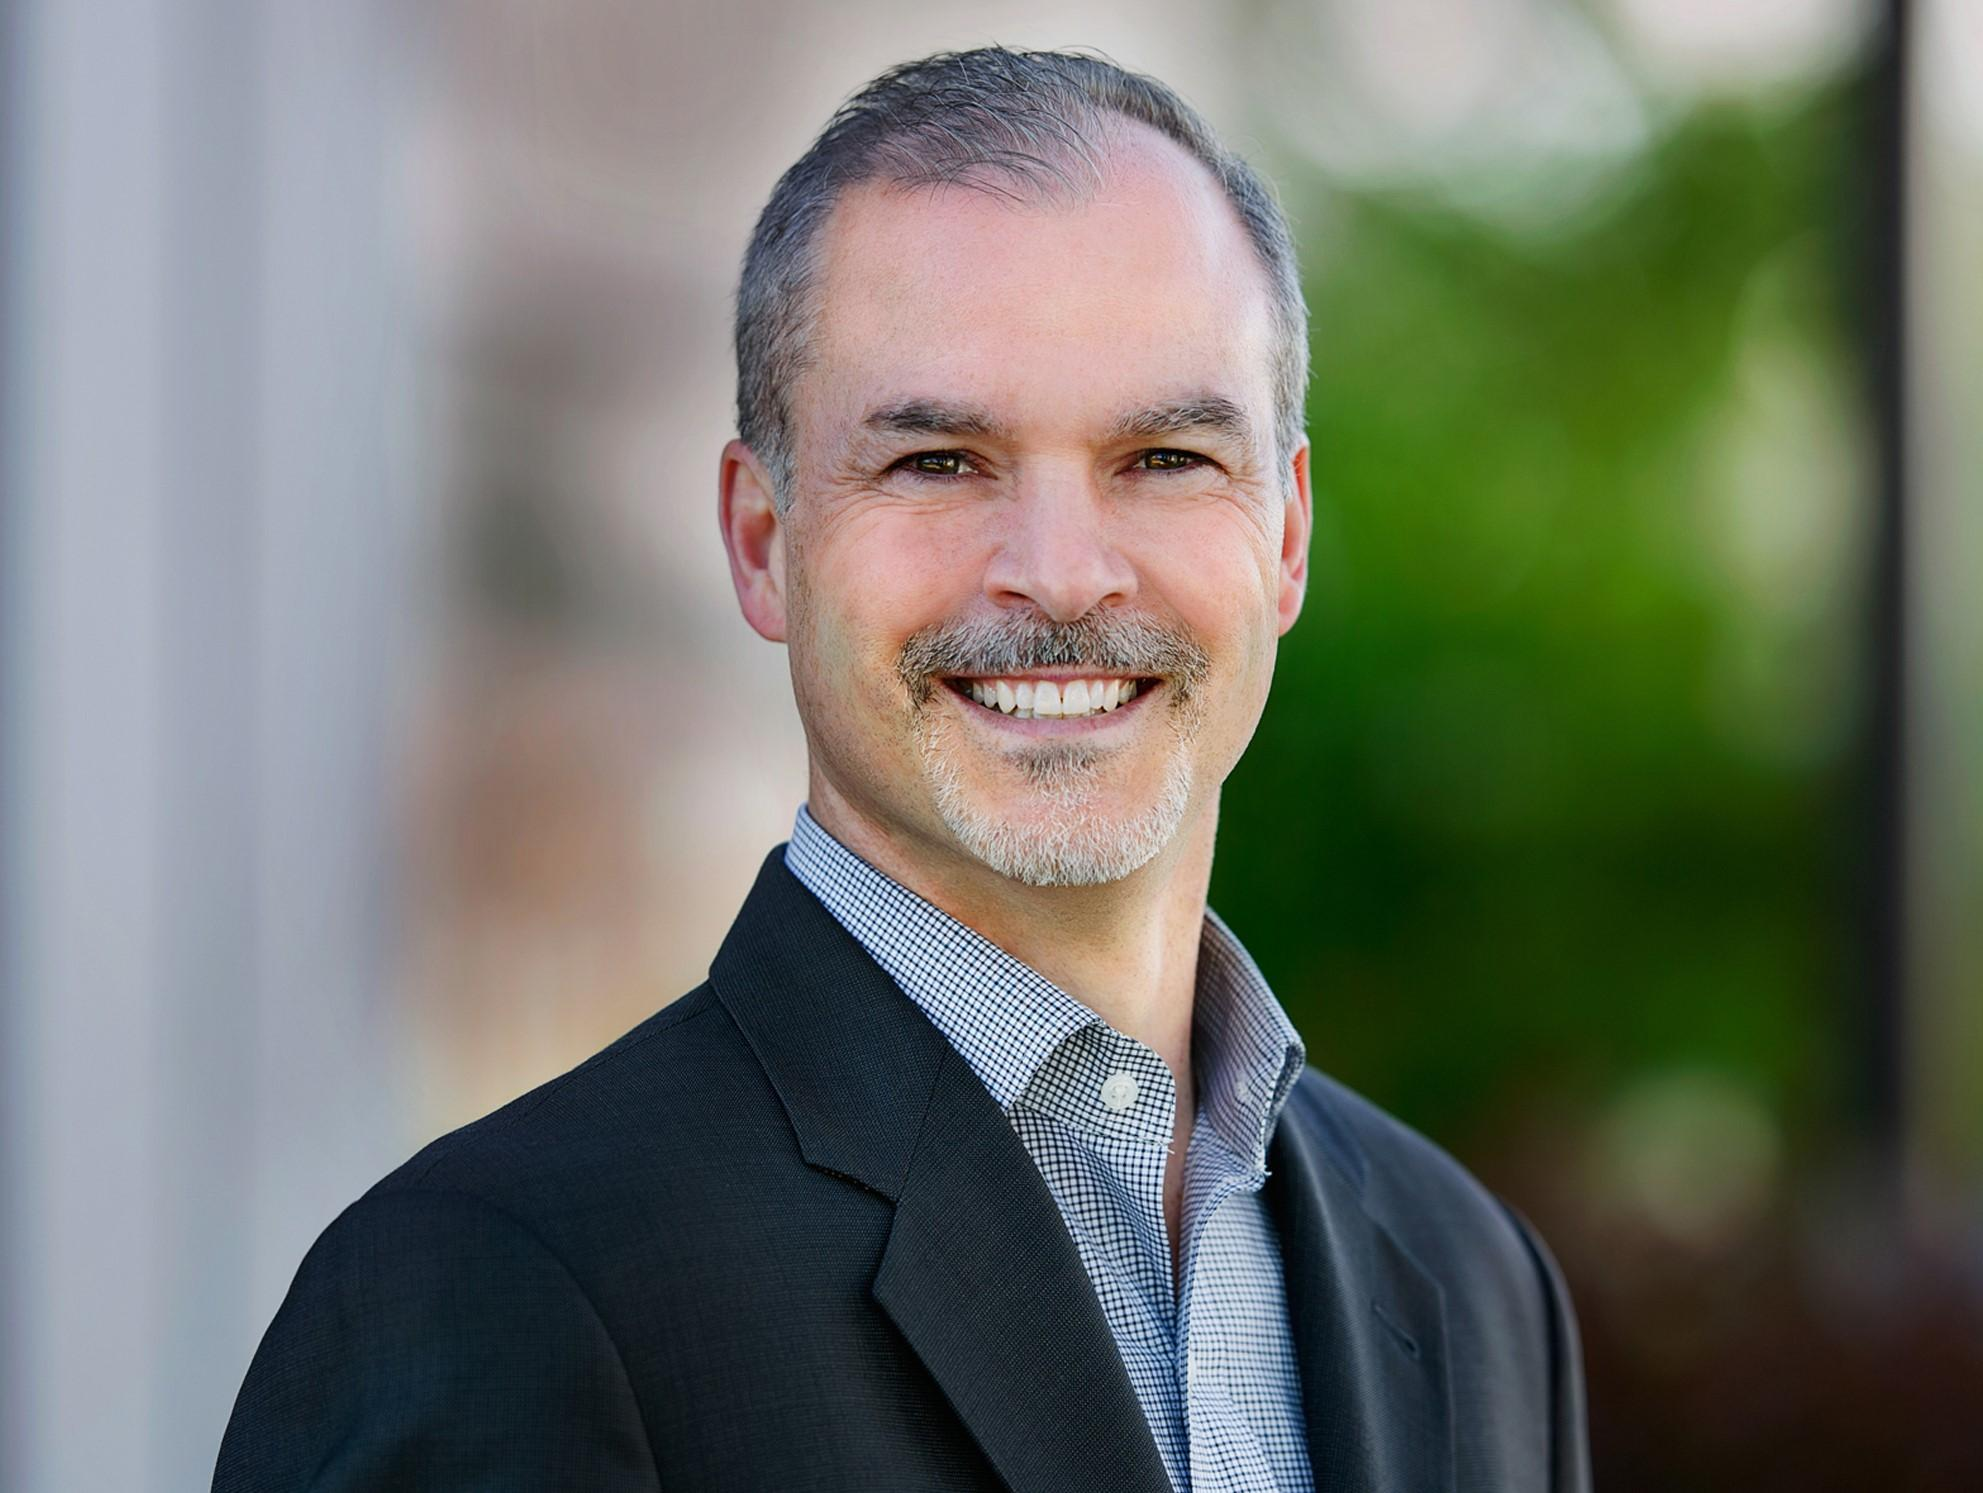 MARK A. SCHMELING  Your Registered Representative & Insurance Agent